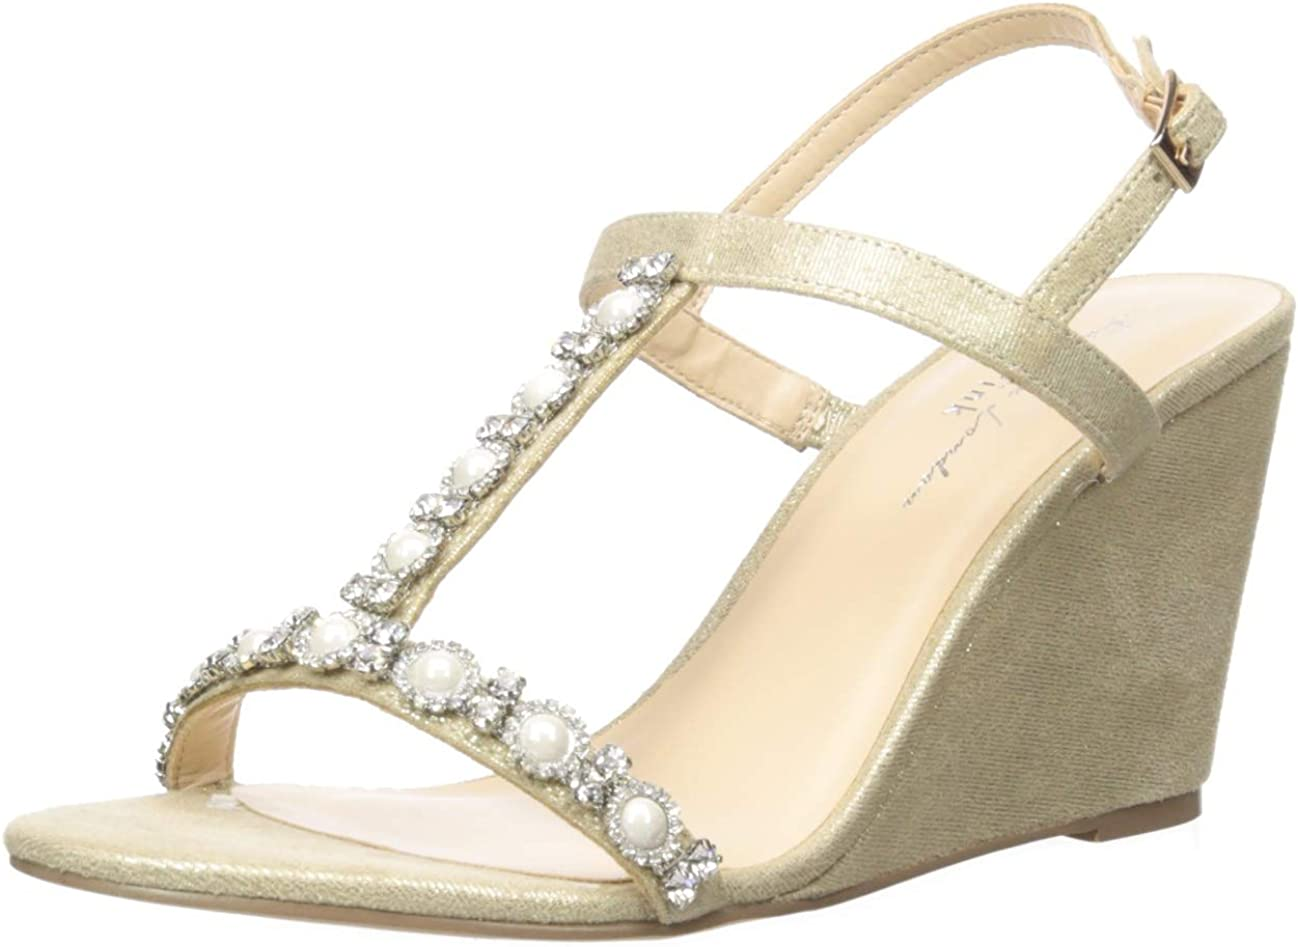 Pink Paradox New mail order London Women's Kianna Sandal Clearance SALE! Limited time! Wedge